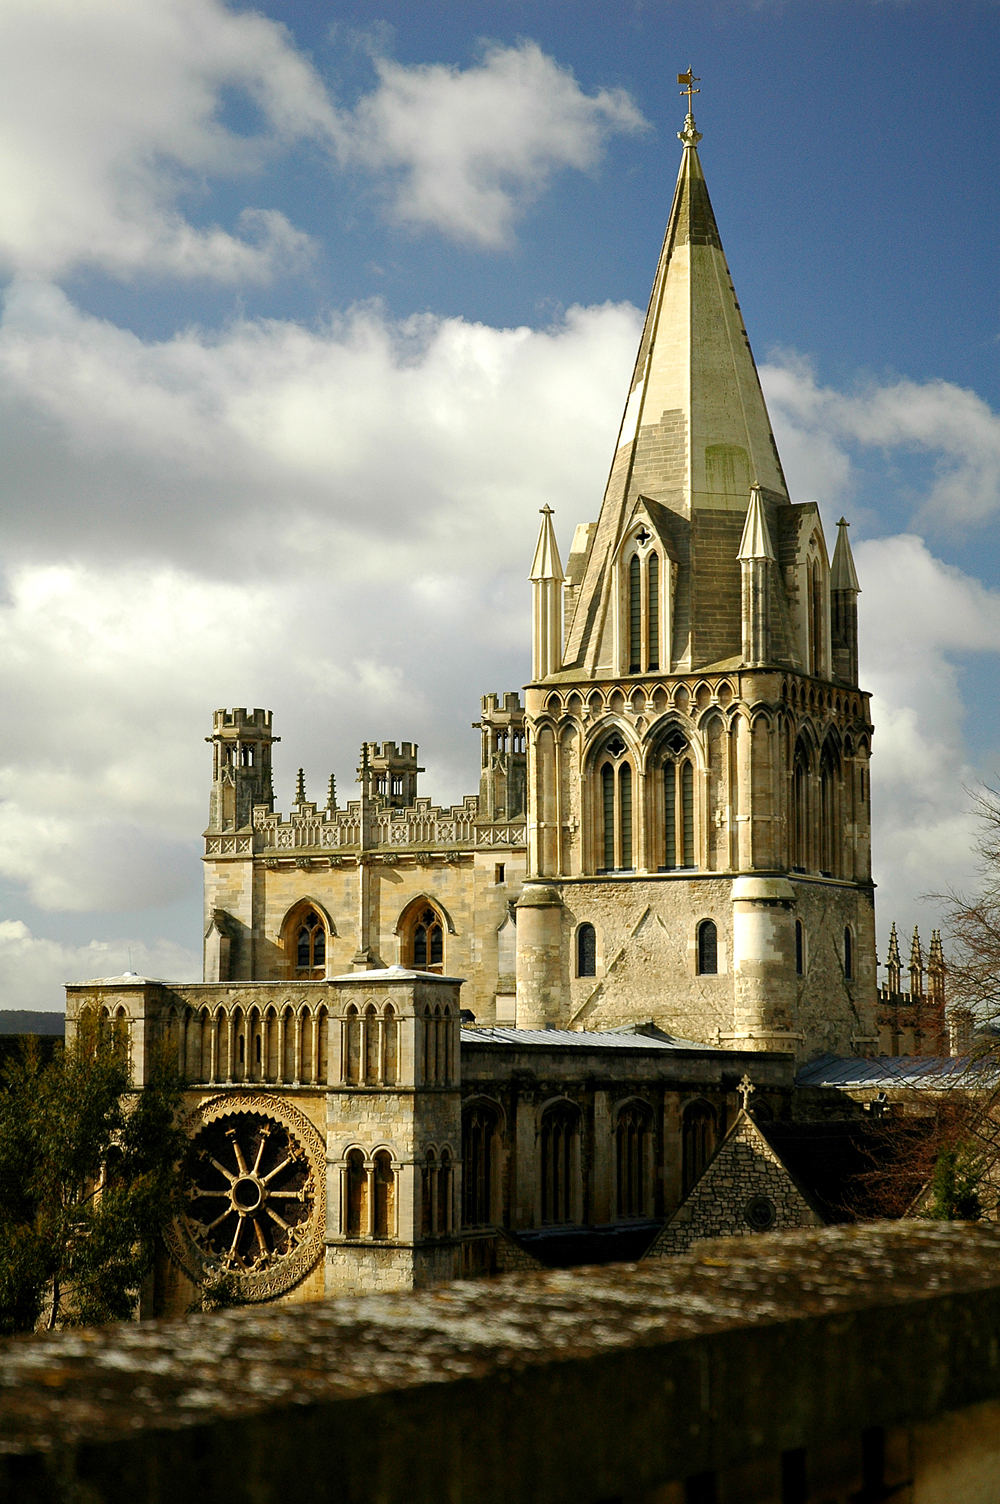 Christ Church Cathedral at Oxford